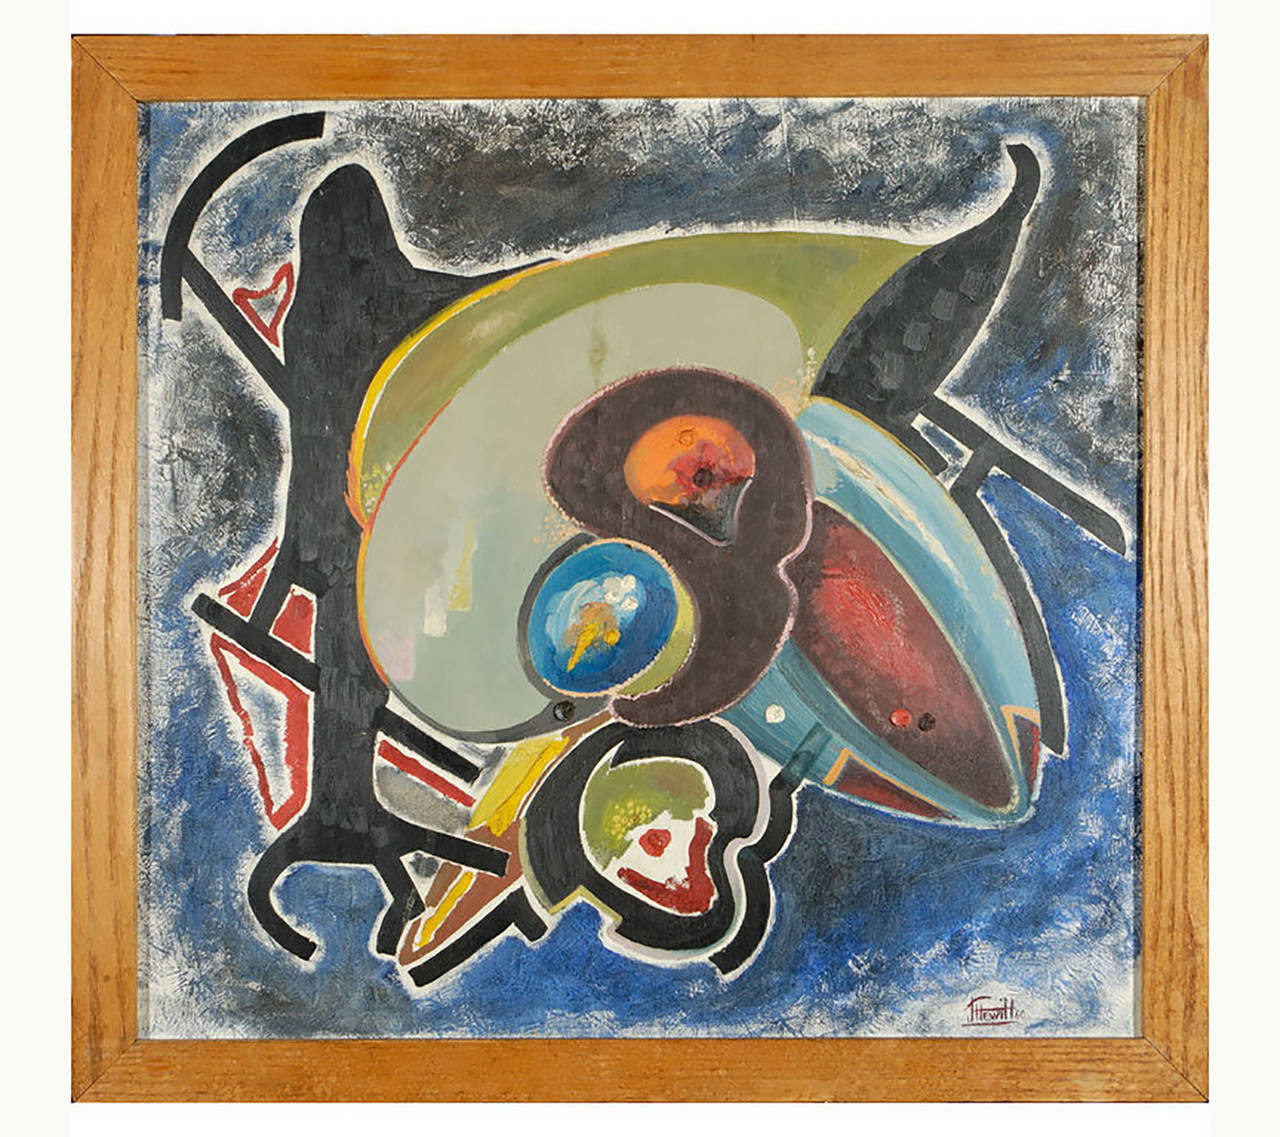 With a technique undoubtedly inspired by Braque, this 1960 abstract painting appears to be a surrealistic still life. Lively colors included blue, green, red, orange, yellow and black. Signed J. Hewitt 60, and framed with a simple oak molding.